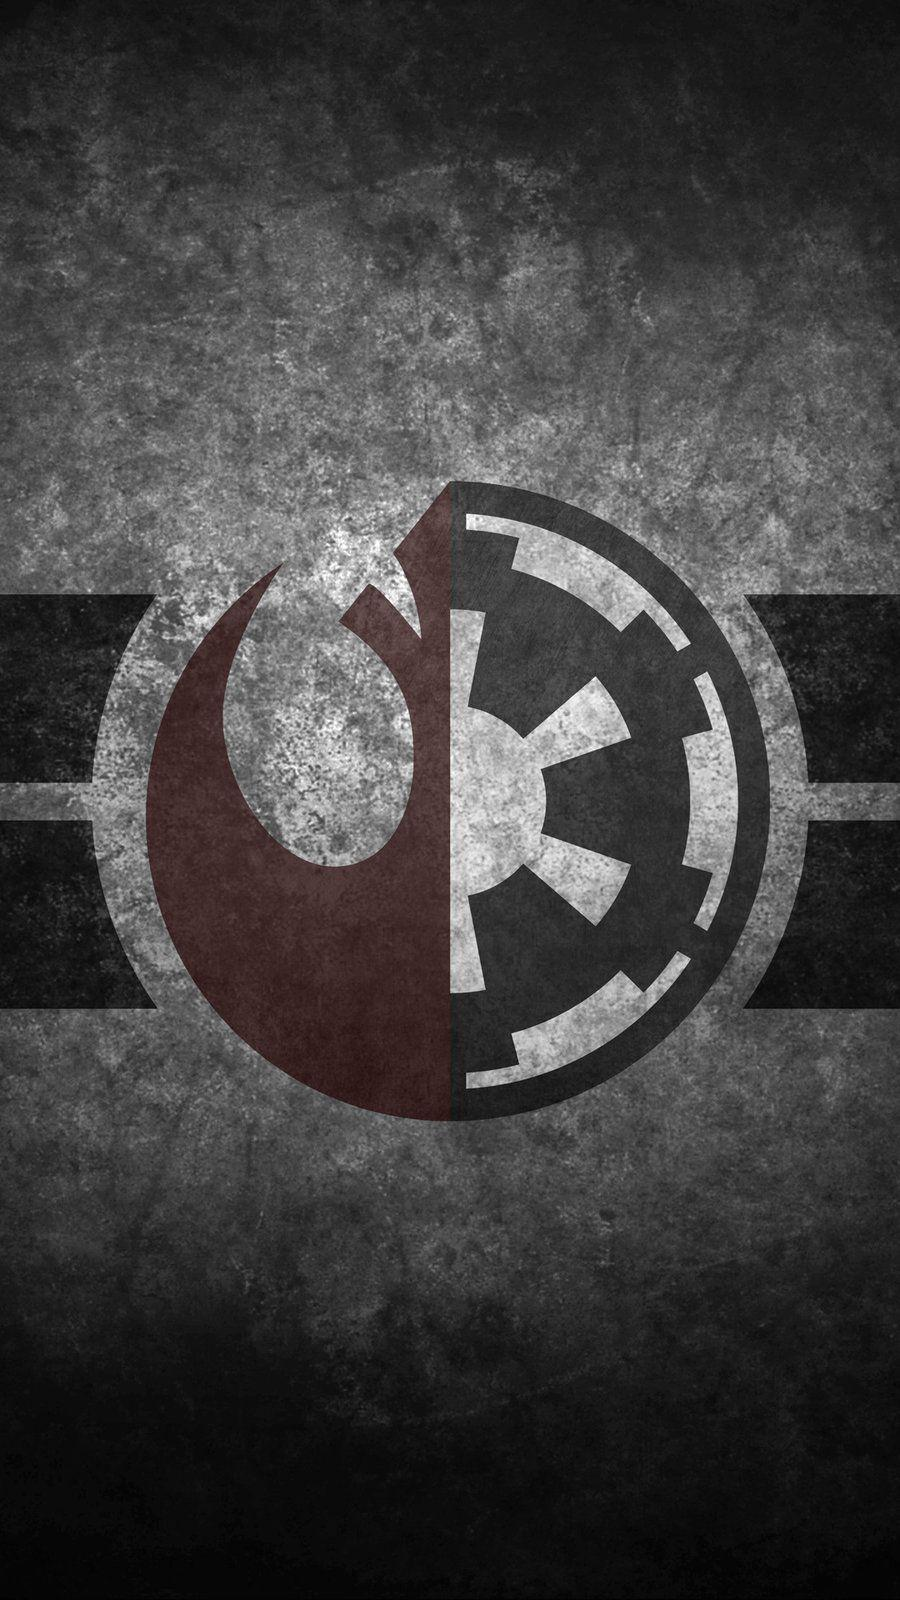 Rebel Alliance Wallpapers Wallpaper Cave